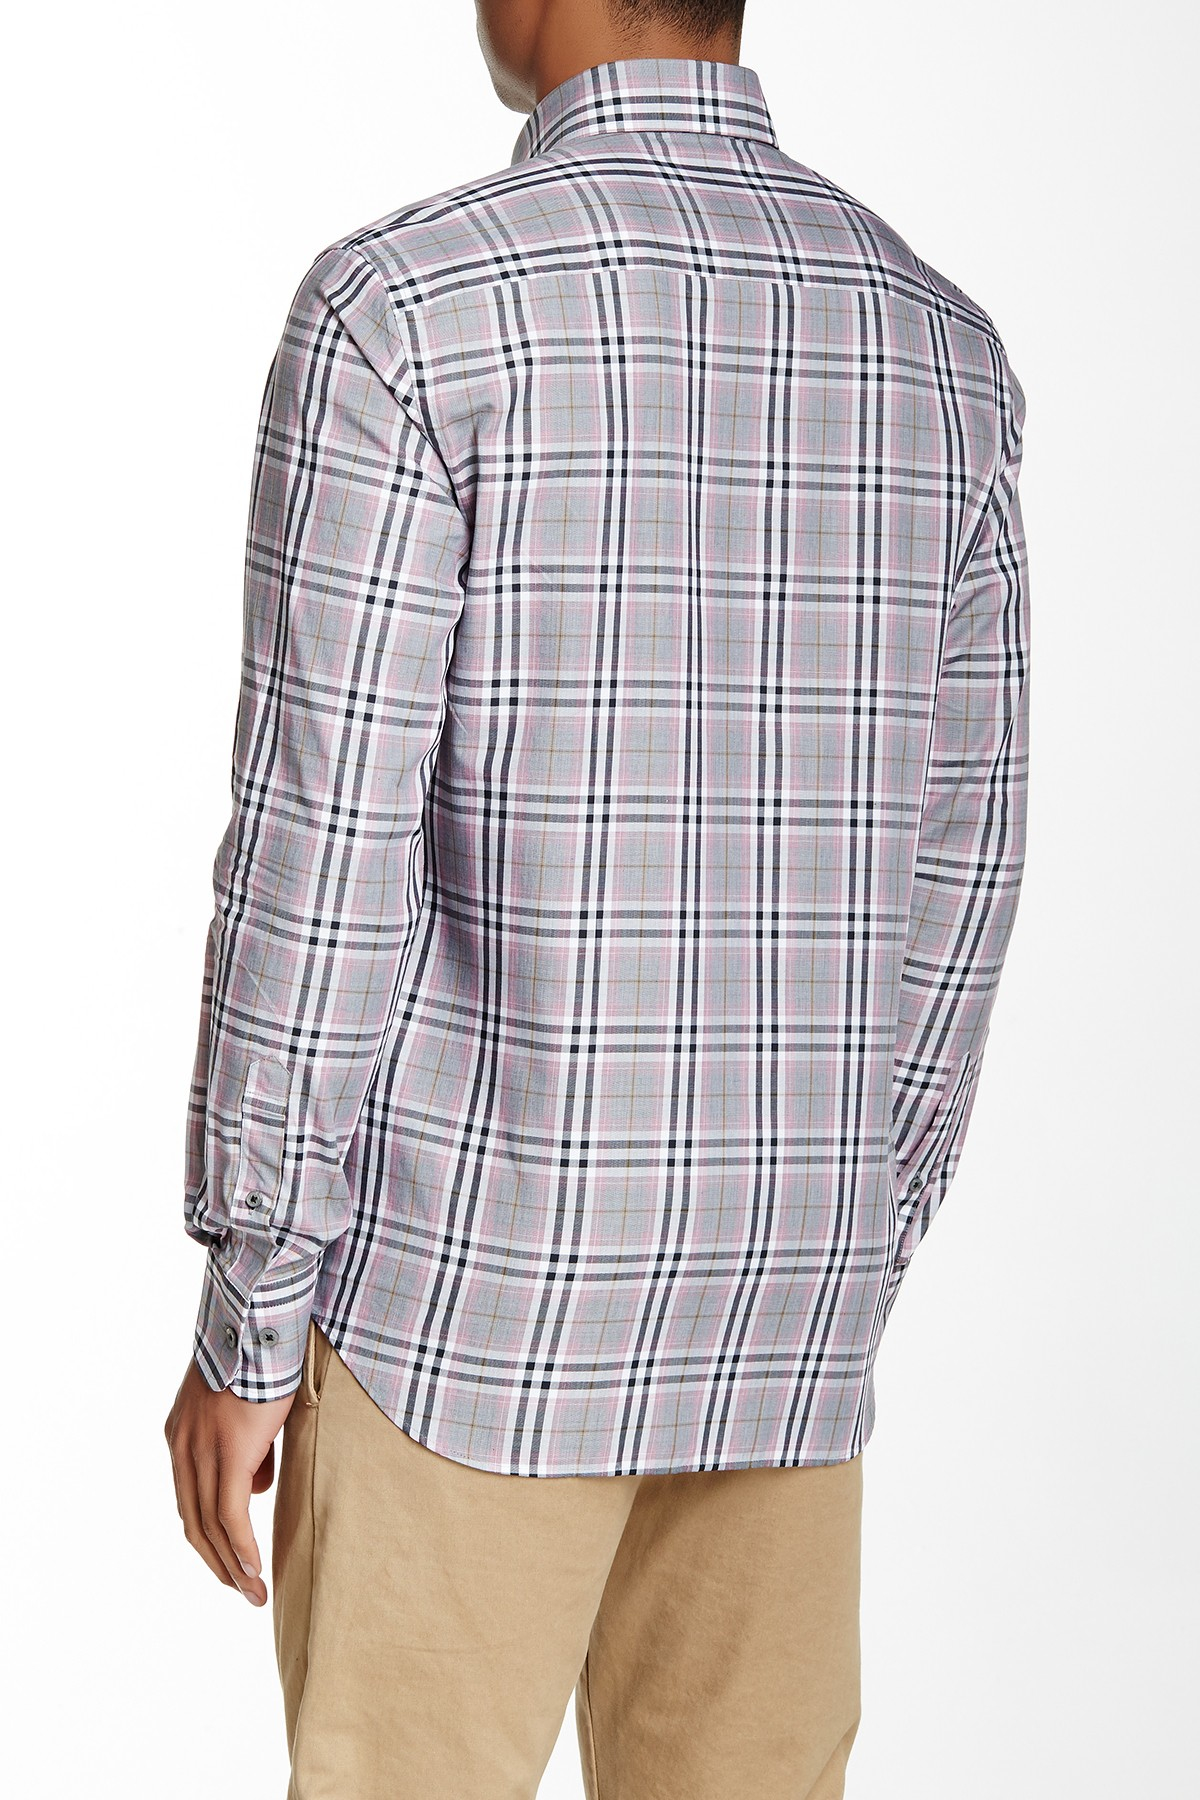 Stone Rose Plaid Long Sleeve Regular Fit Shirt In Blue For